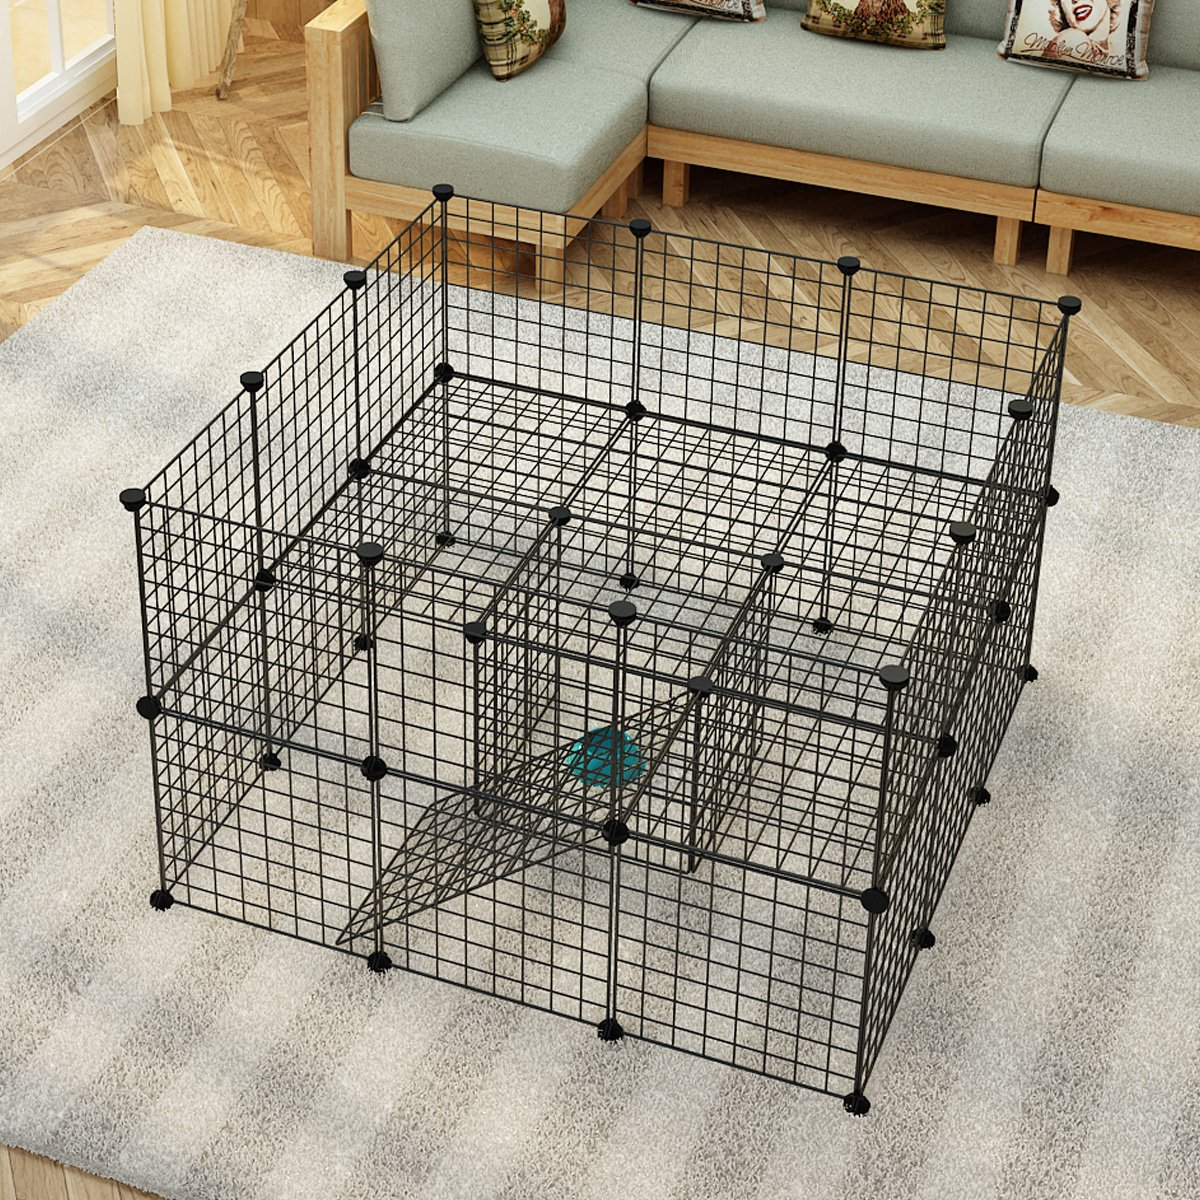 JYYG Small Pet Pen Bunny Cage Dogs Playpen Indoor Out Door Animal Fence Puppy Guinea Pigs, Dwarf Rabbits PET-F (36 Panels, Black) by JYYG (Image #2)